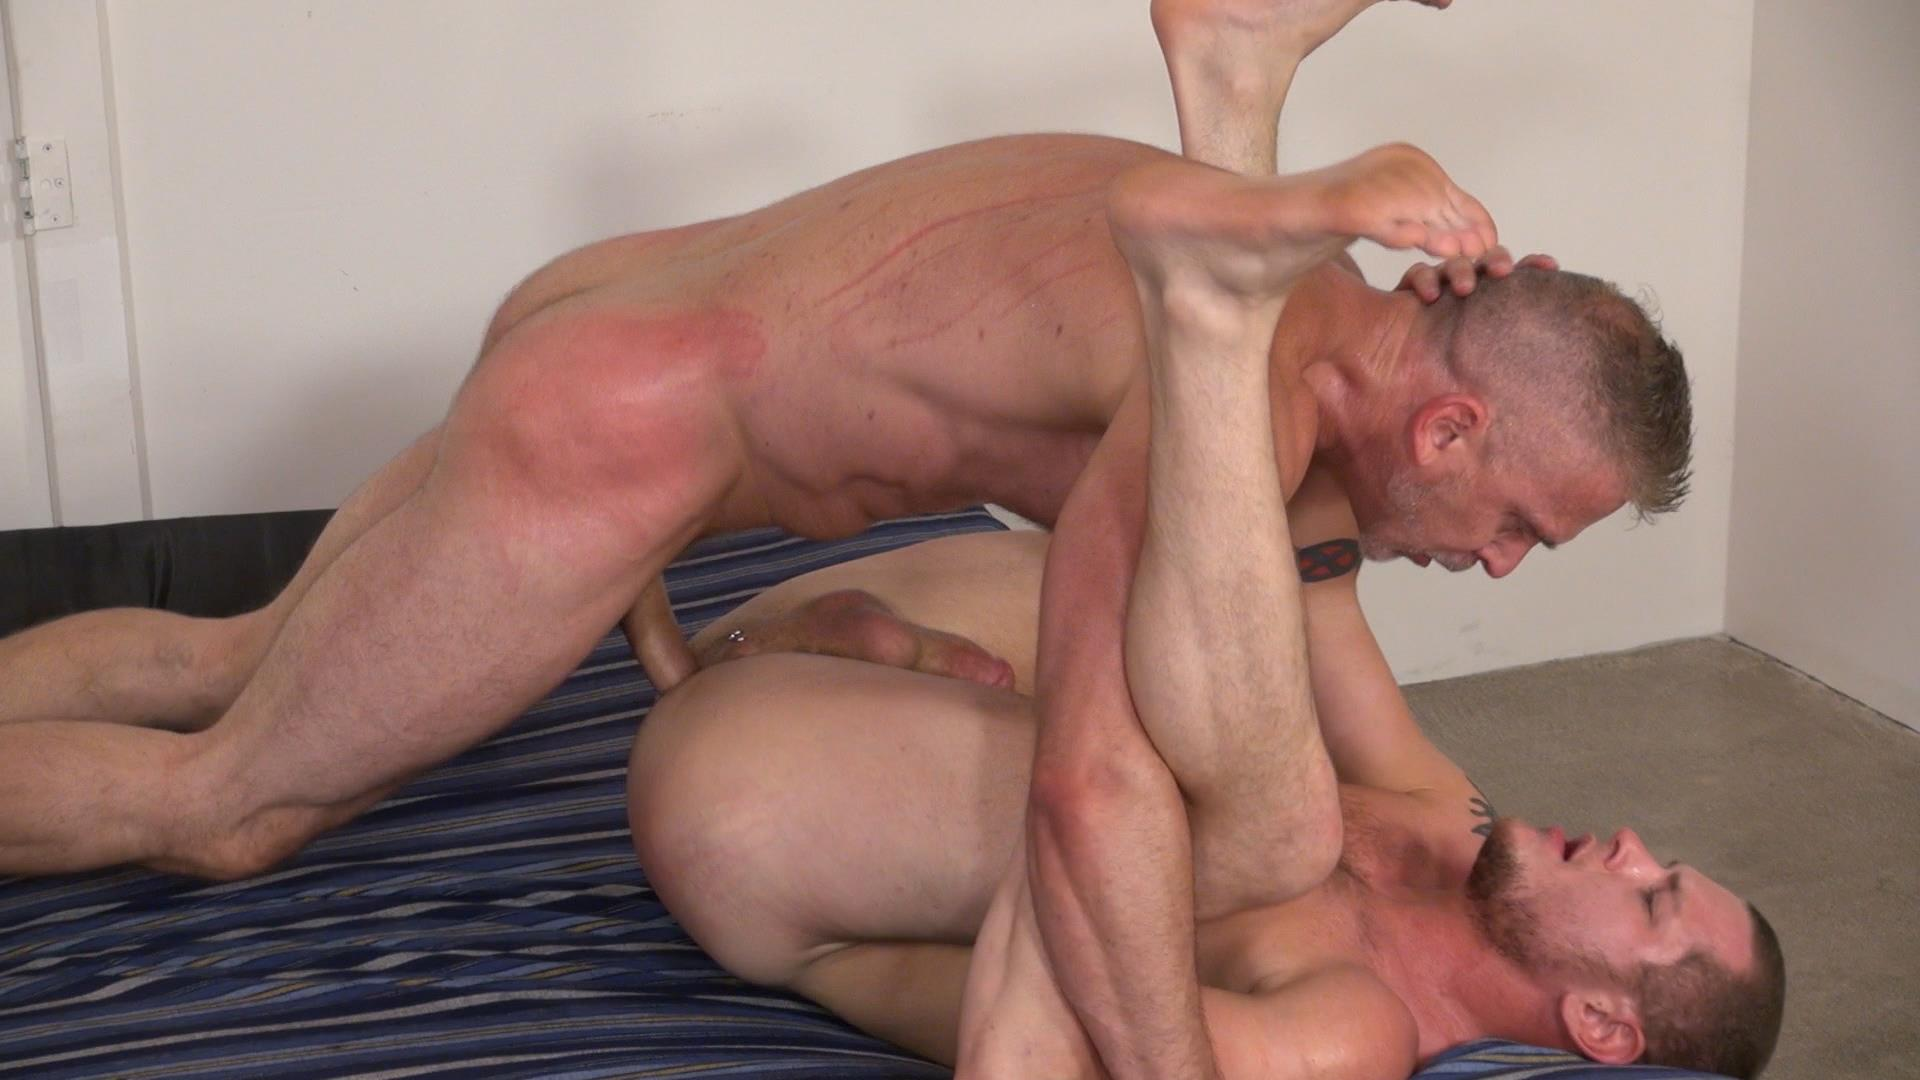 Raw and Rough Sam Dixon and Blue Bailey Daddy And Boy Flip Flip Bareback Fucking Amateur Gay Porn 07 Blue Bailey Flip Flop Barebacking With A Hung Daddy